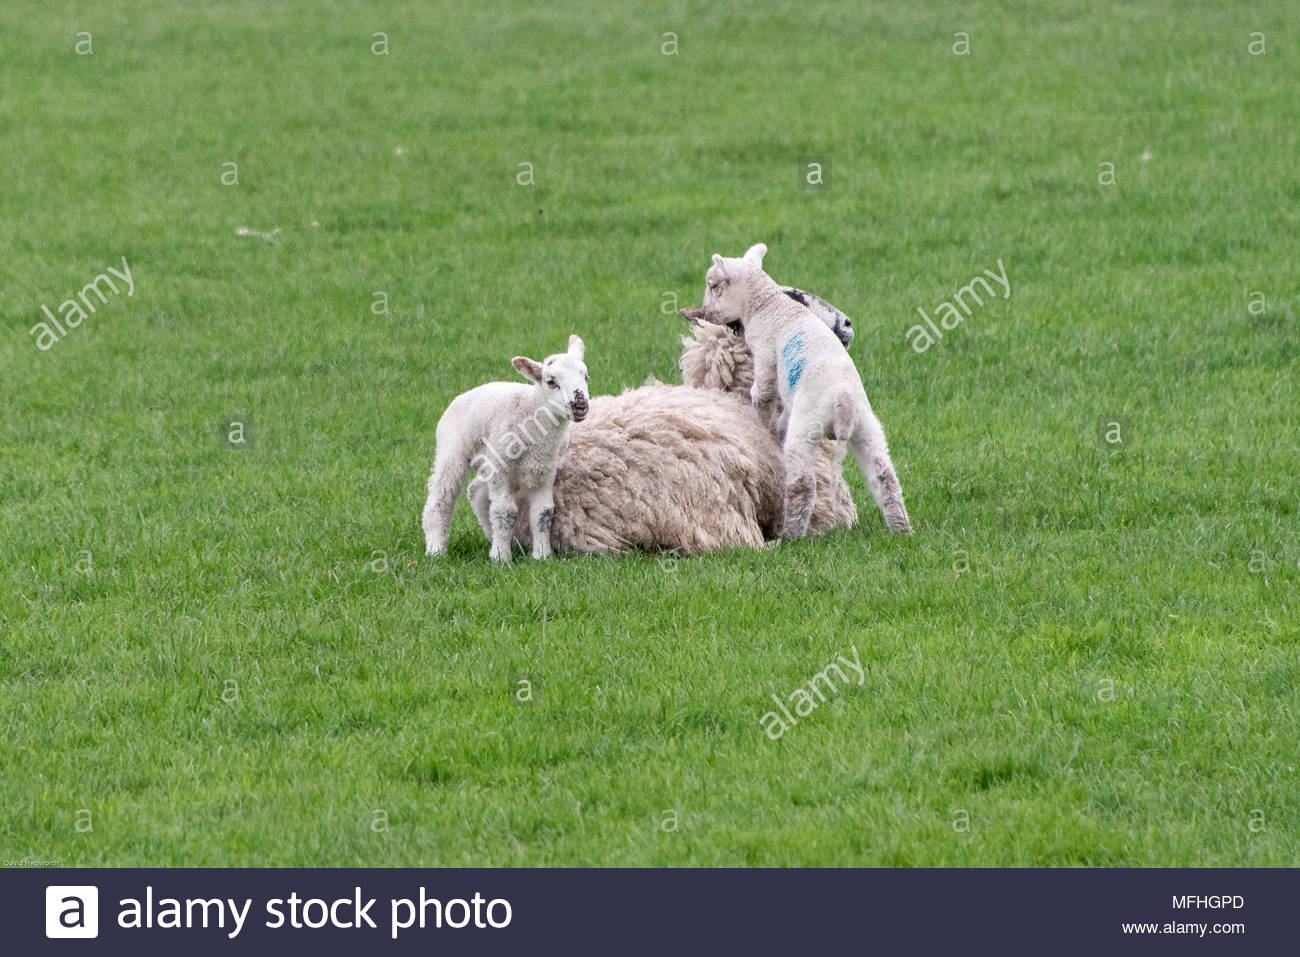 Two lambs and the ewe, with one lamb climbing on the ewe's back - Stock Image